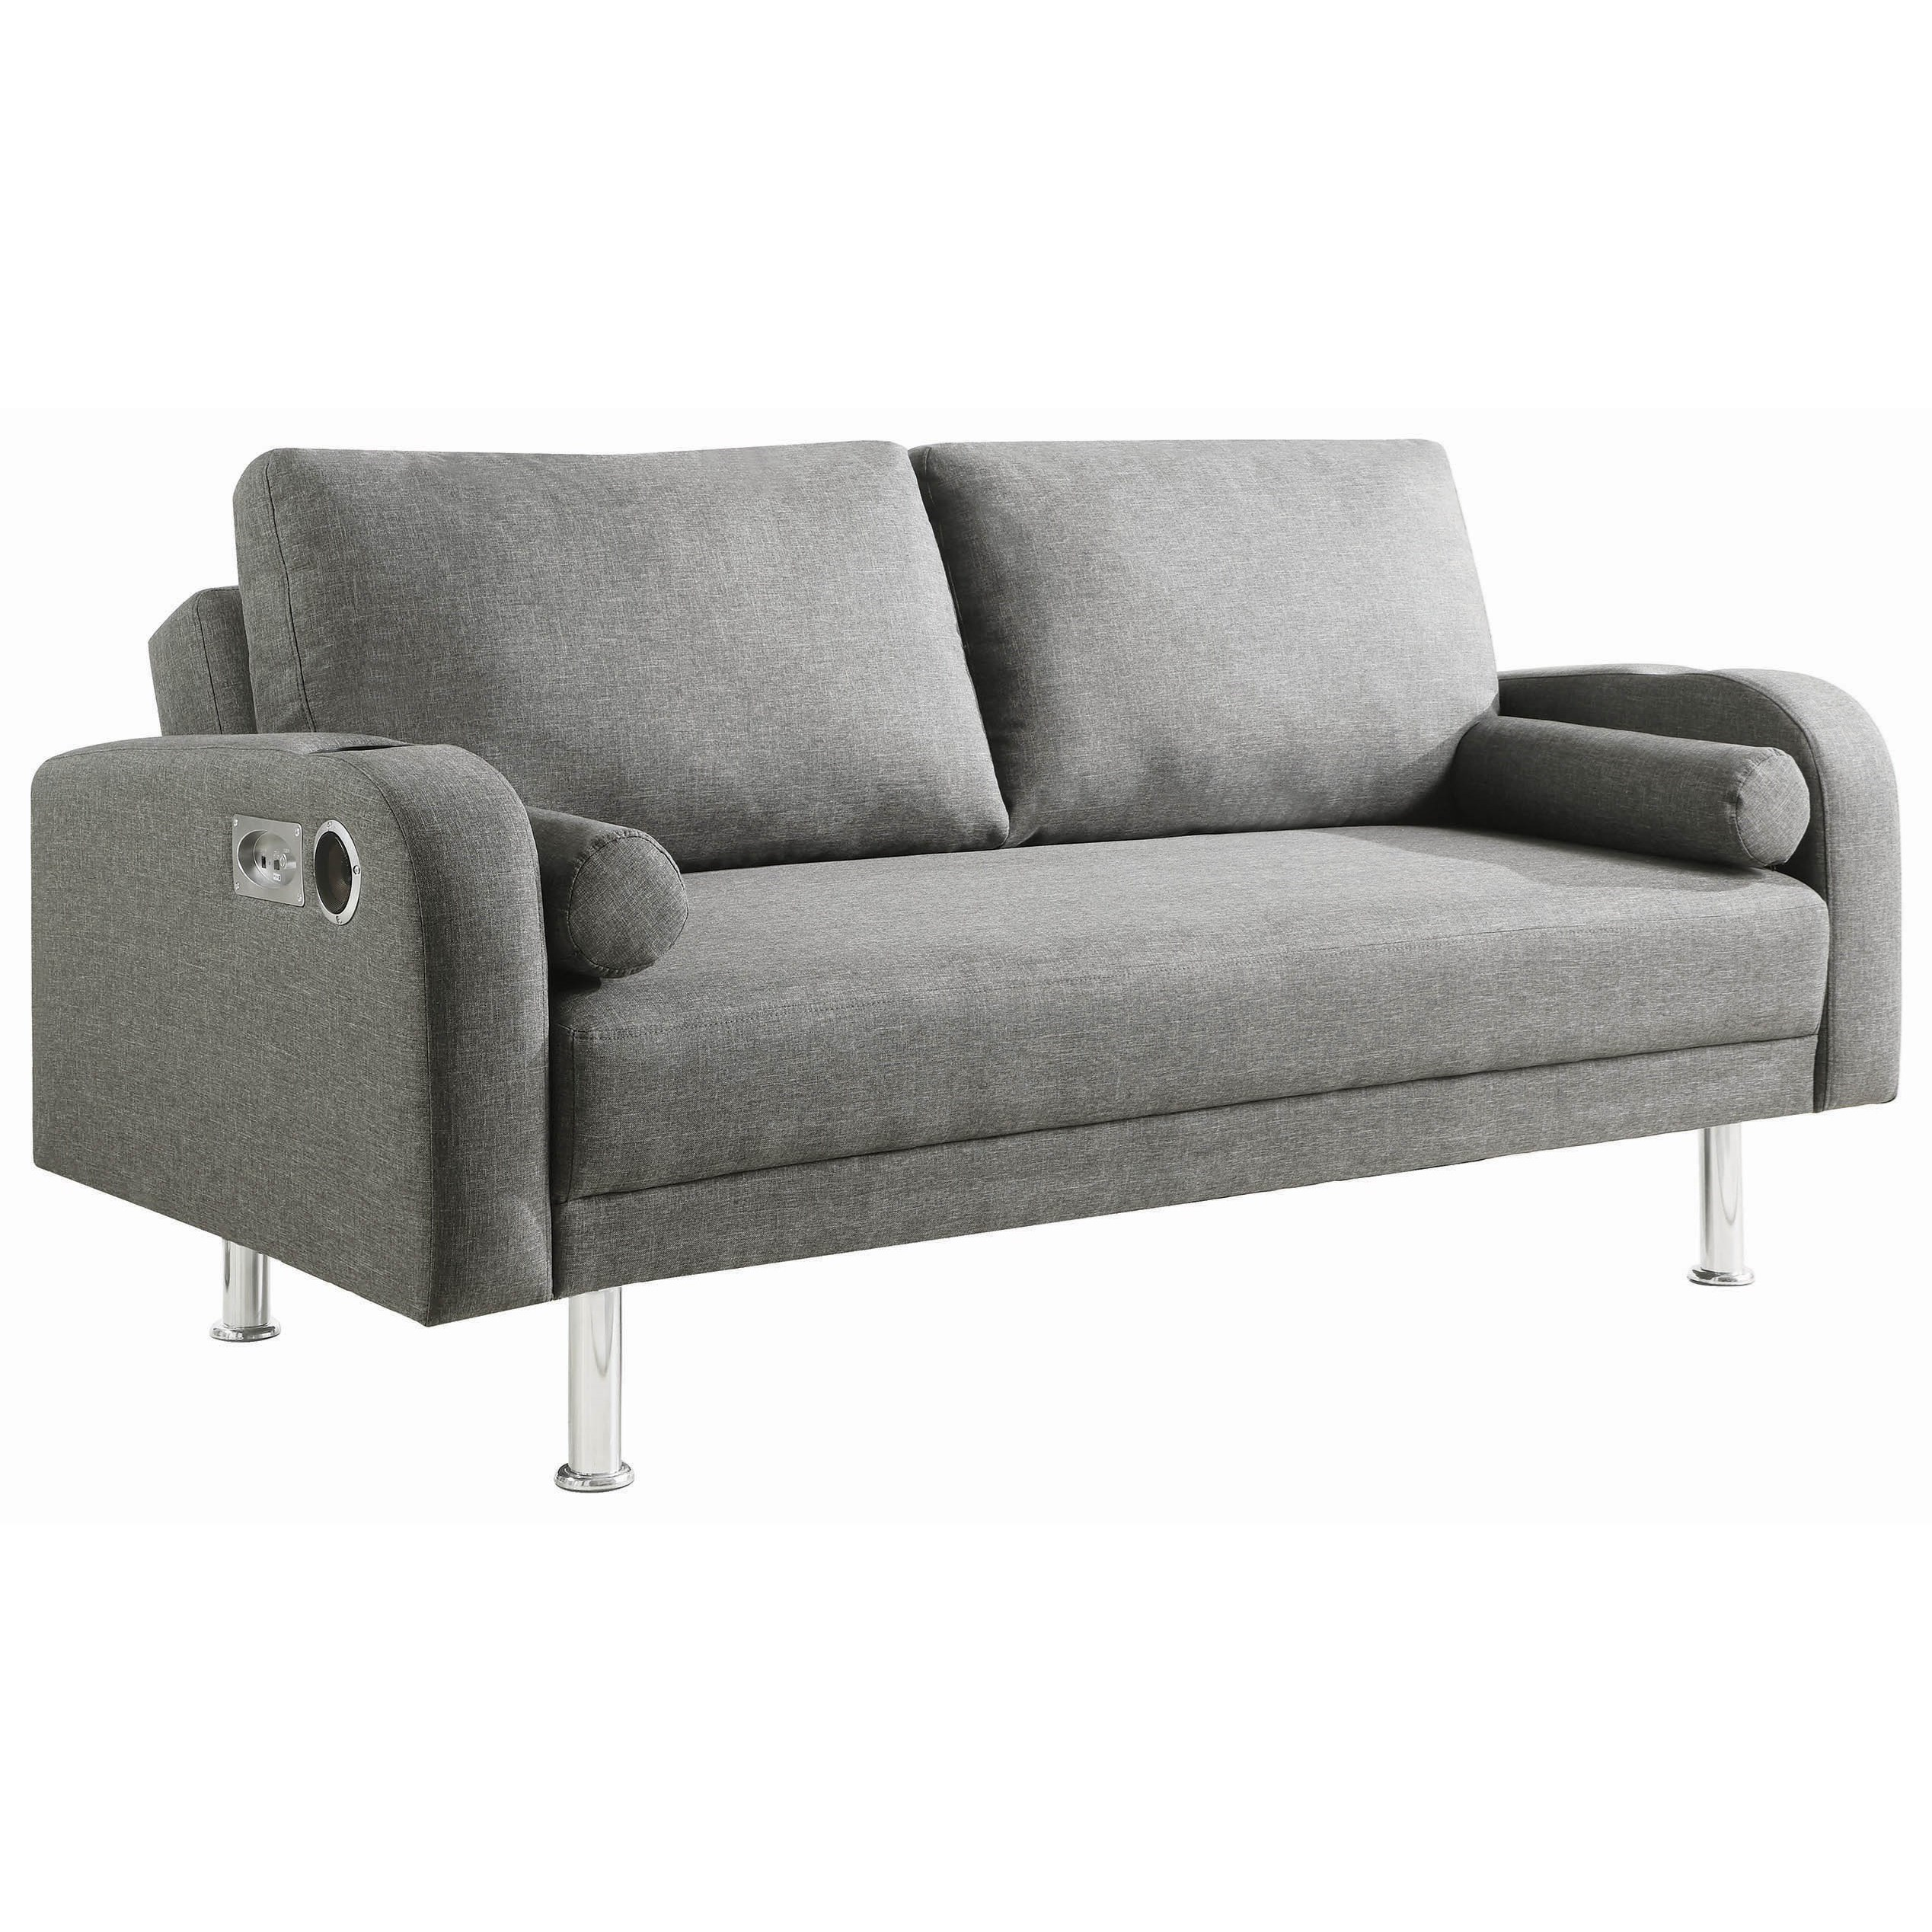 Sofa Beds and Futons Contemporary Sofa Bed with Bluetooth / AUX Speakers by  Coaster at Dunk & Bright Furniture